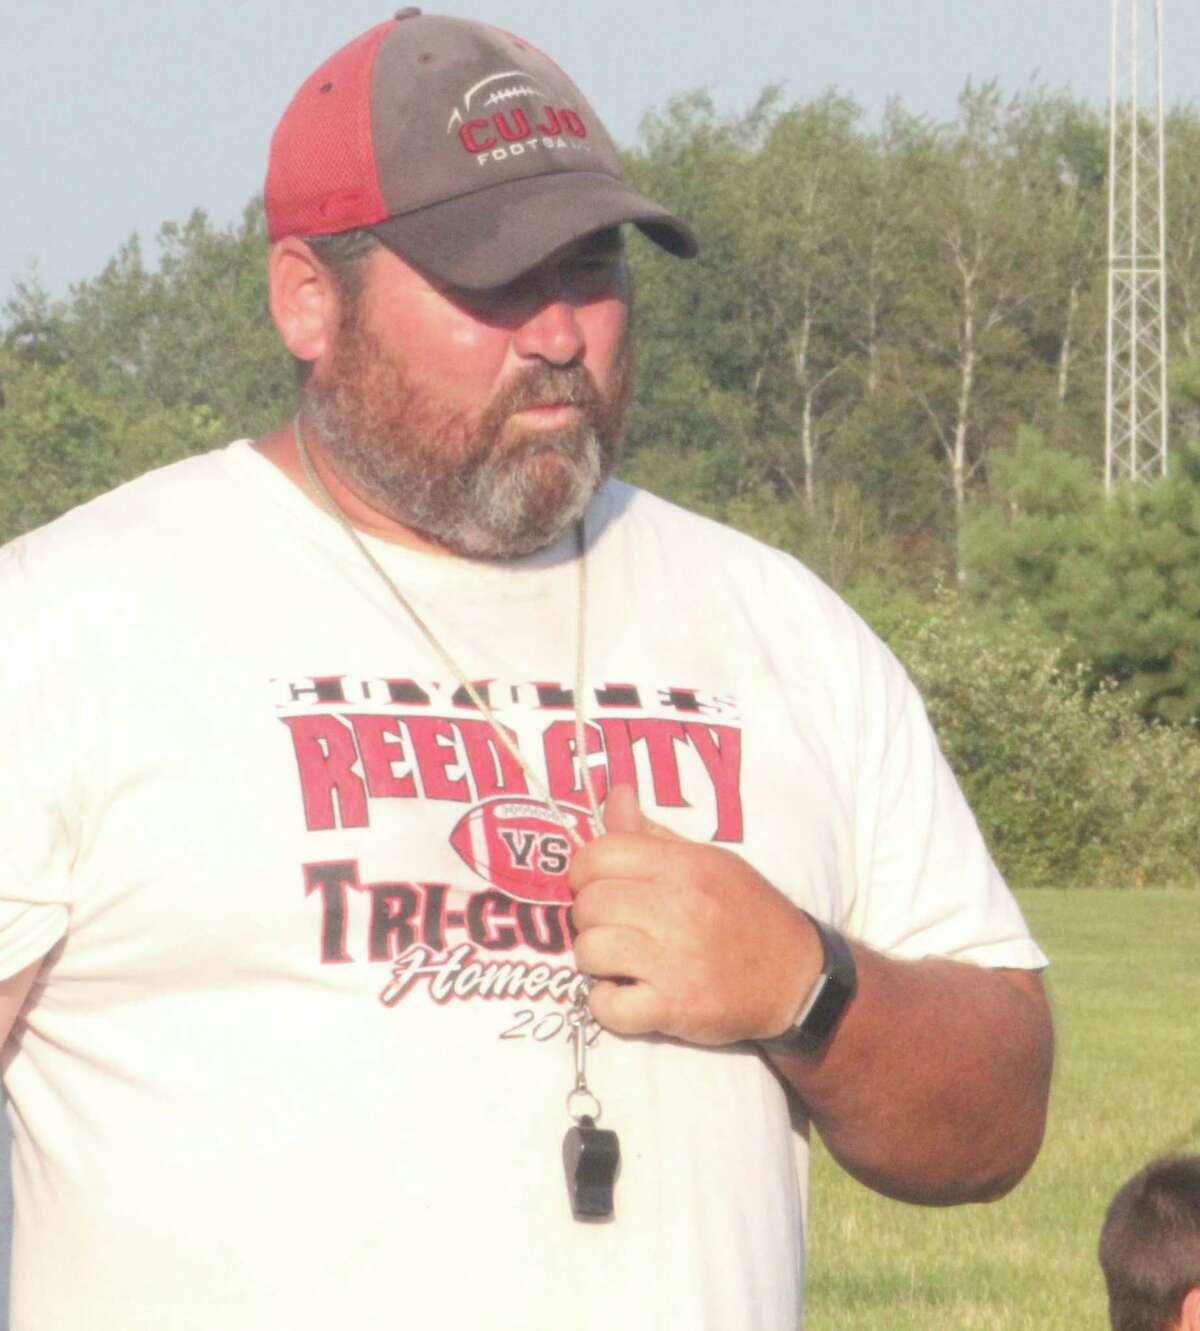 Scott Shankel is entering his third season as Reed City head football coach. (Herald Review photo file)